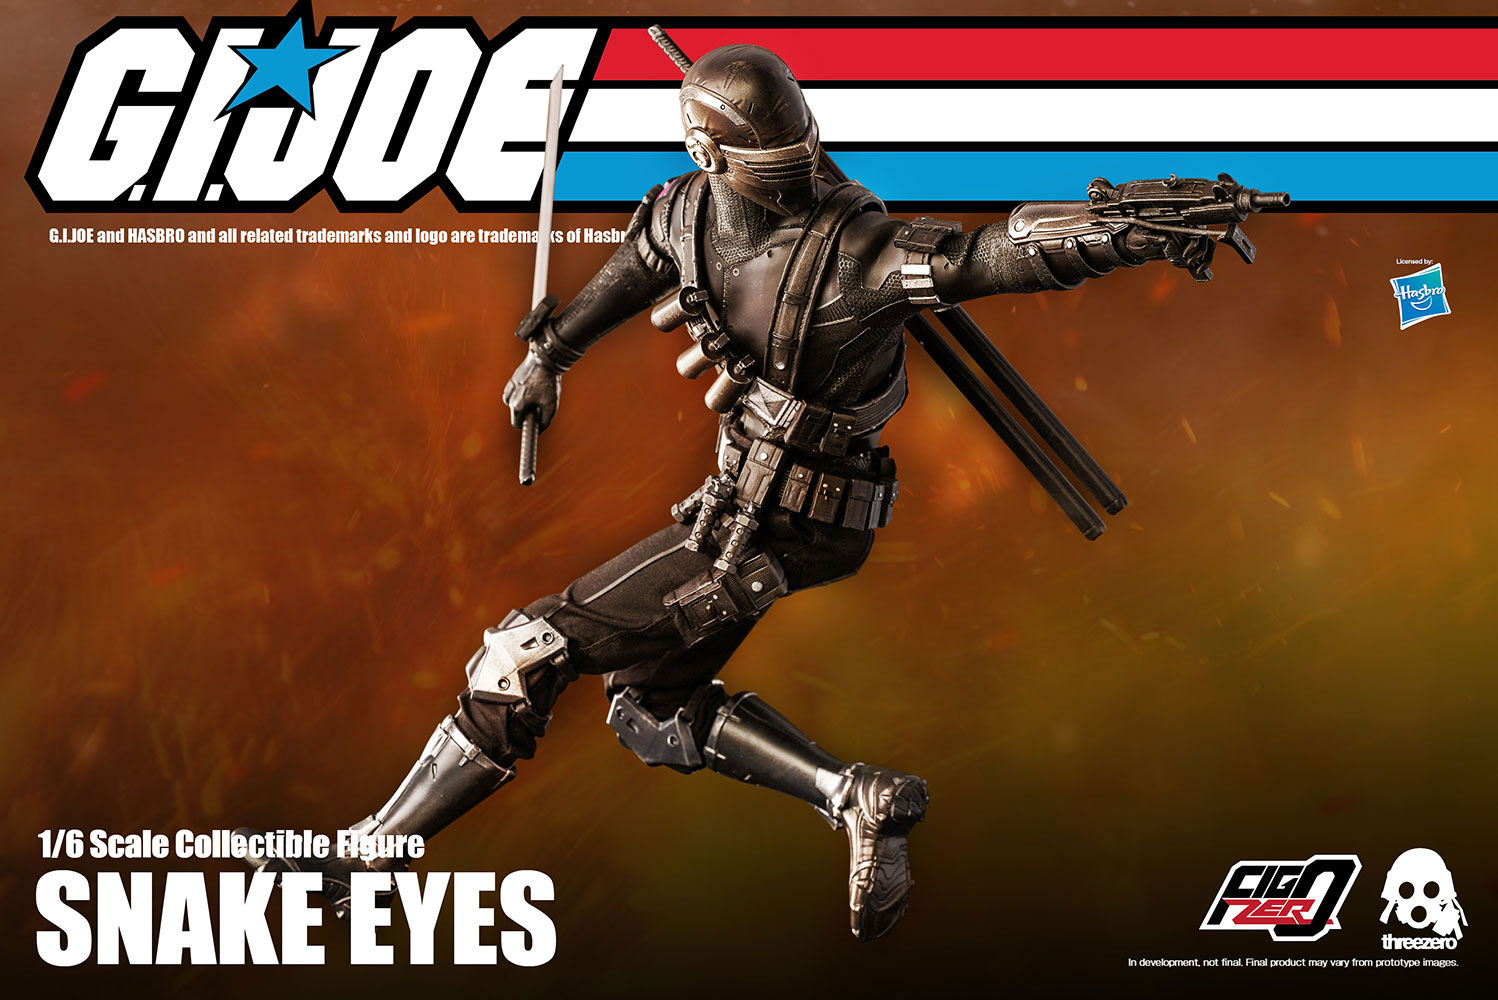 snake-eyes-sixth-scale-figure-threezero-preorder-4